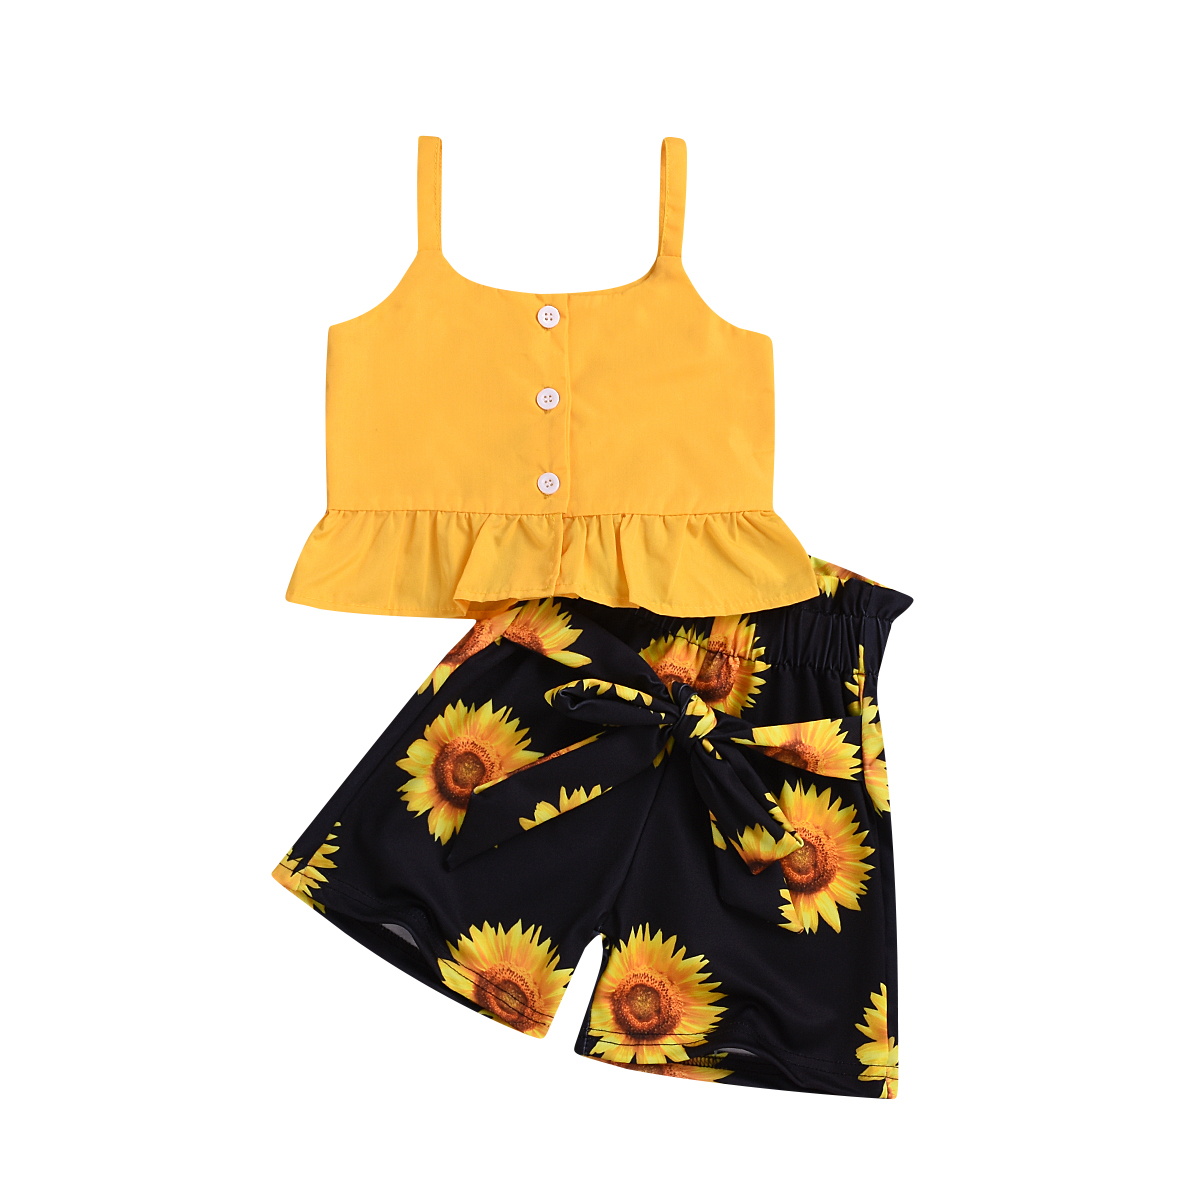 36abd00889a4f Toddler Baby Kid Girl Holiday Clothes Sets Yellow Sleeveless Tops T-shirt  Tank Floral Shorts Pants Outfits 2-6Y ~ Perfect Sale July 2019